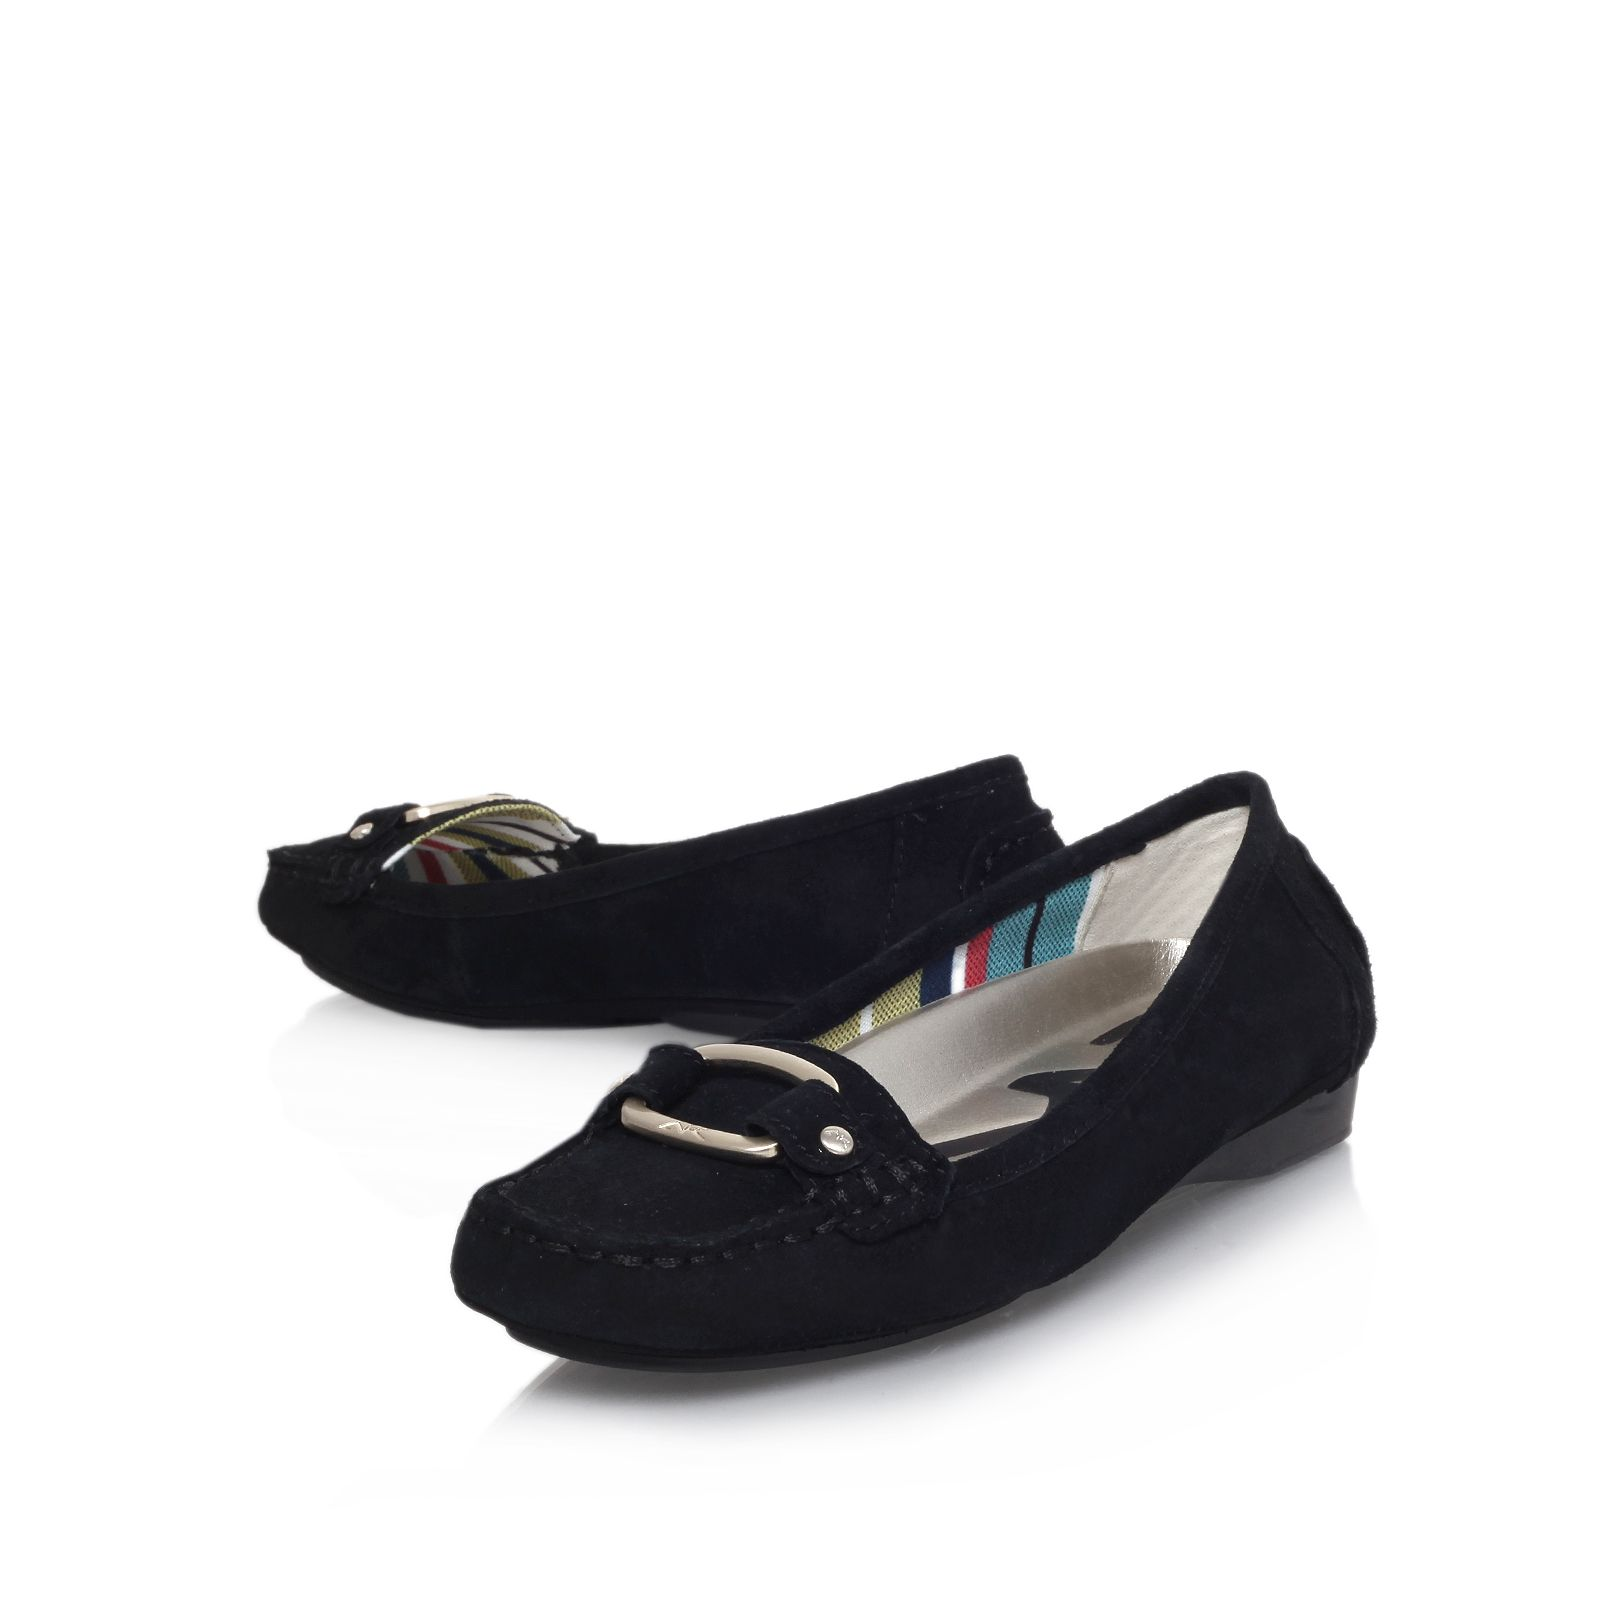 Pythia6 flat loafer shoes